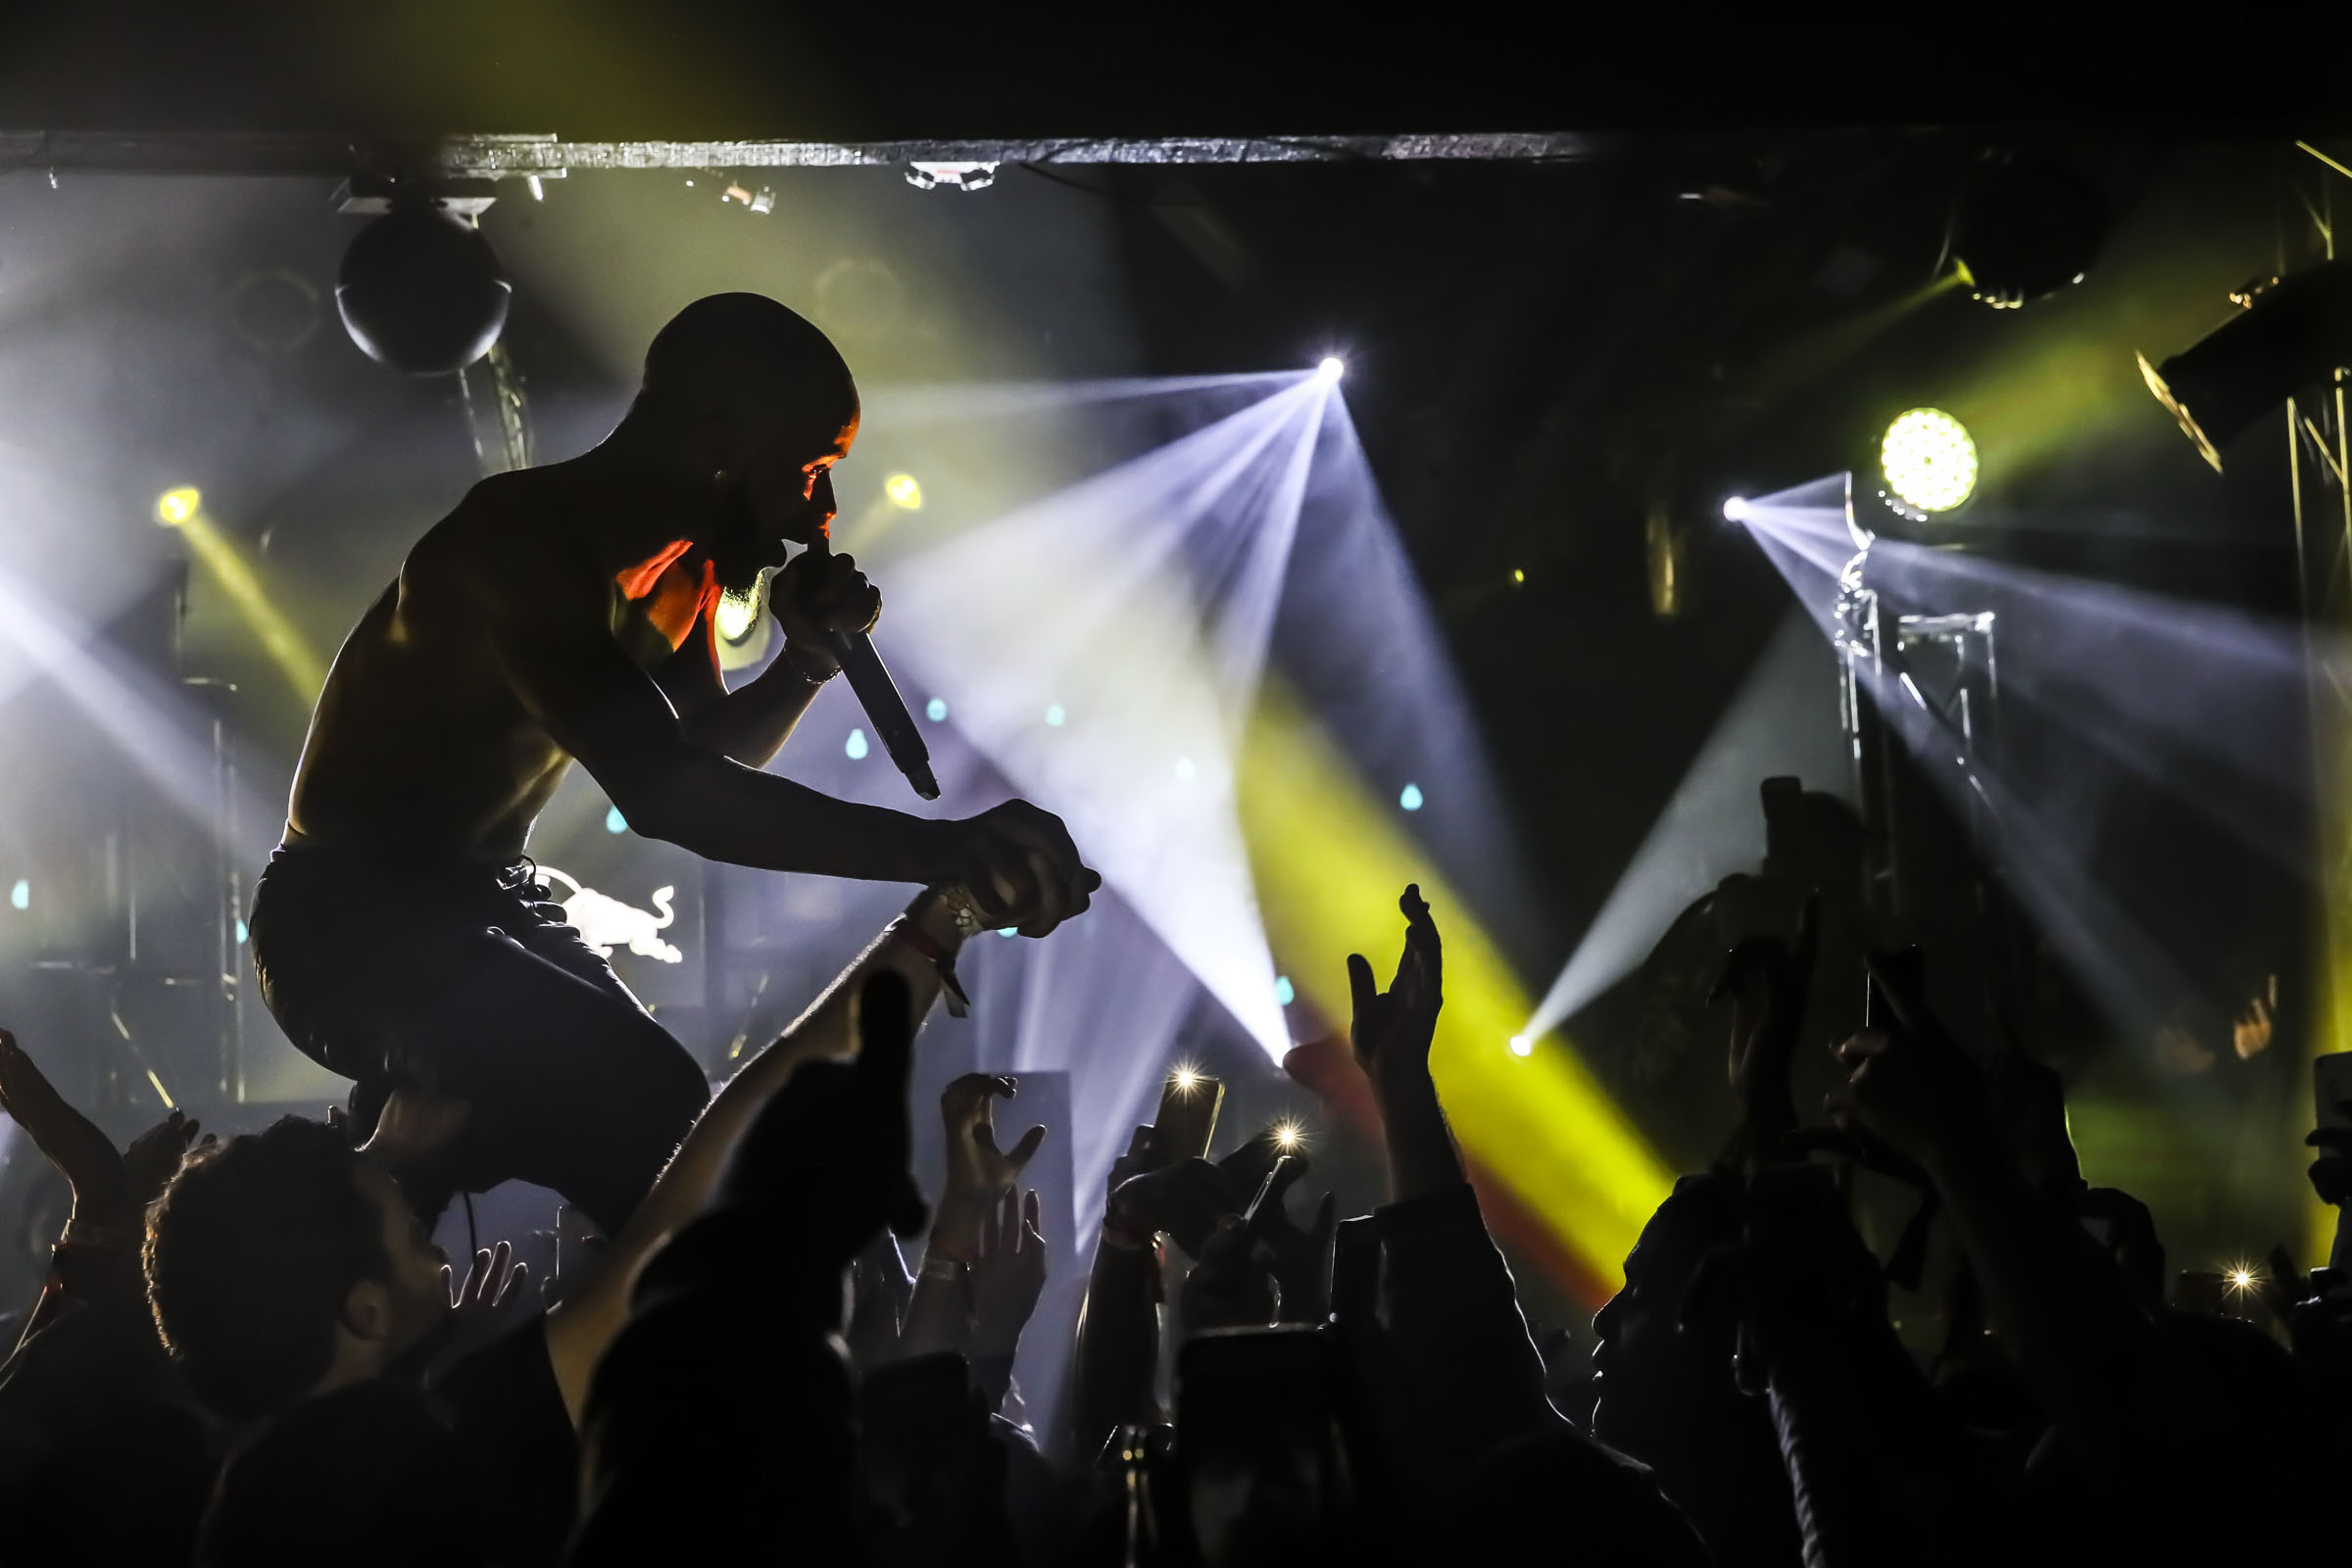 Tory Lanez Performs 30day's in LA RedBull concert series. Los Angeles